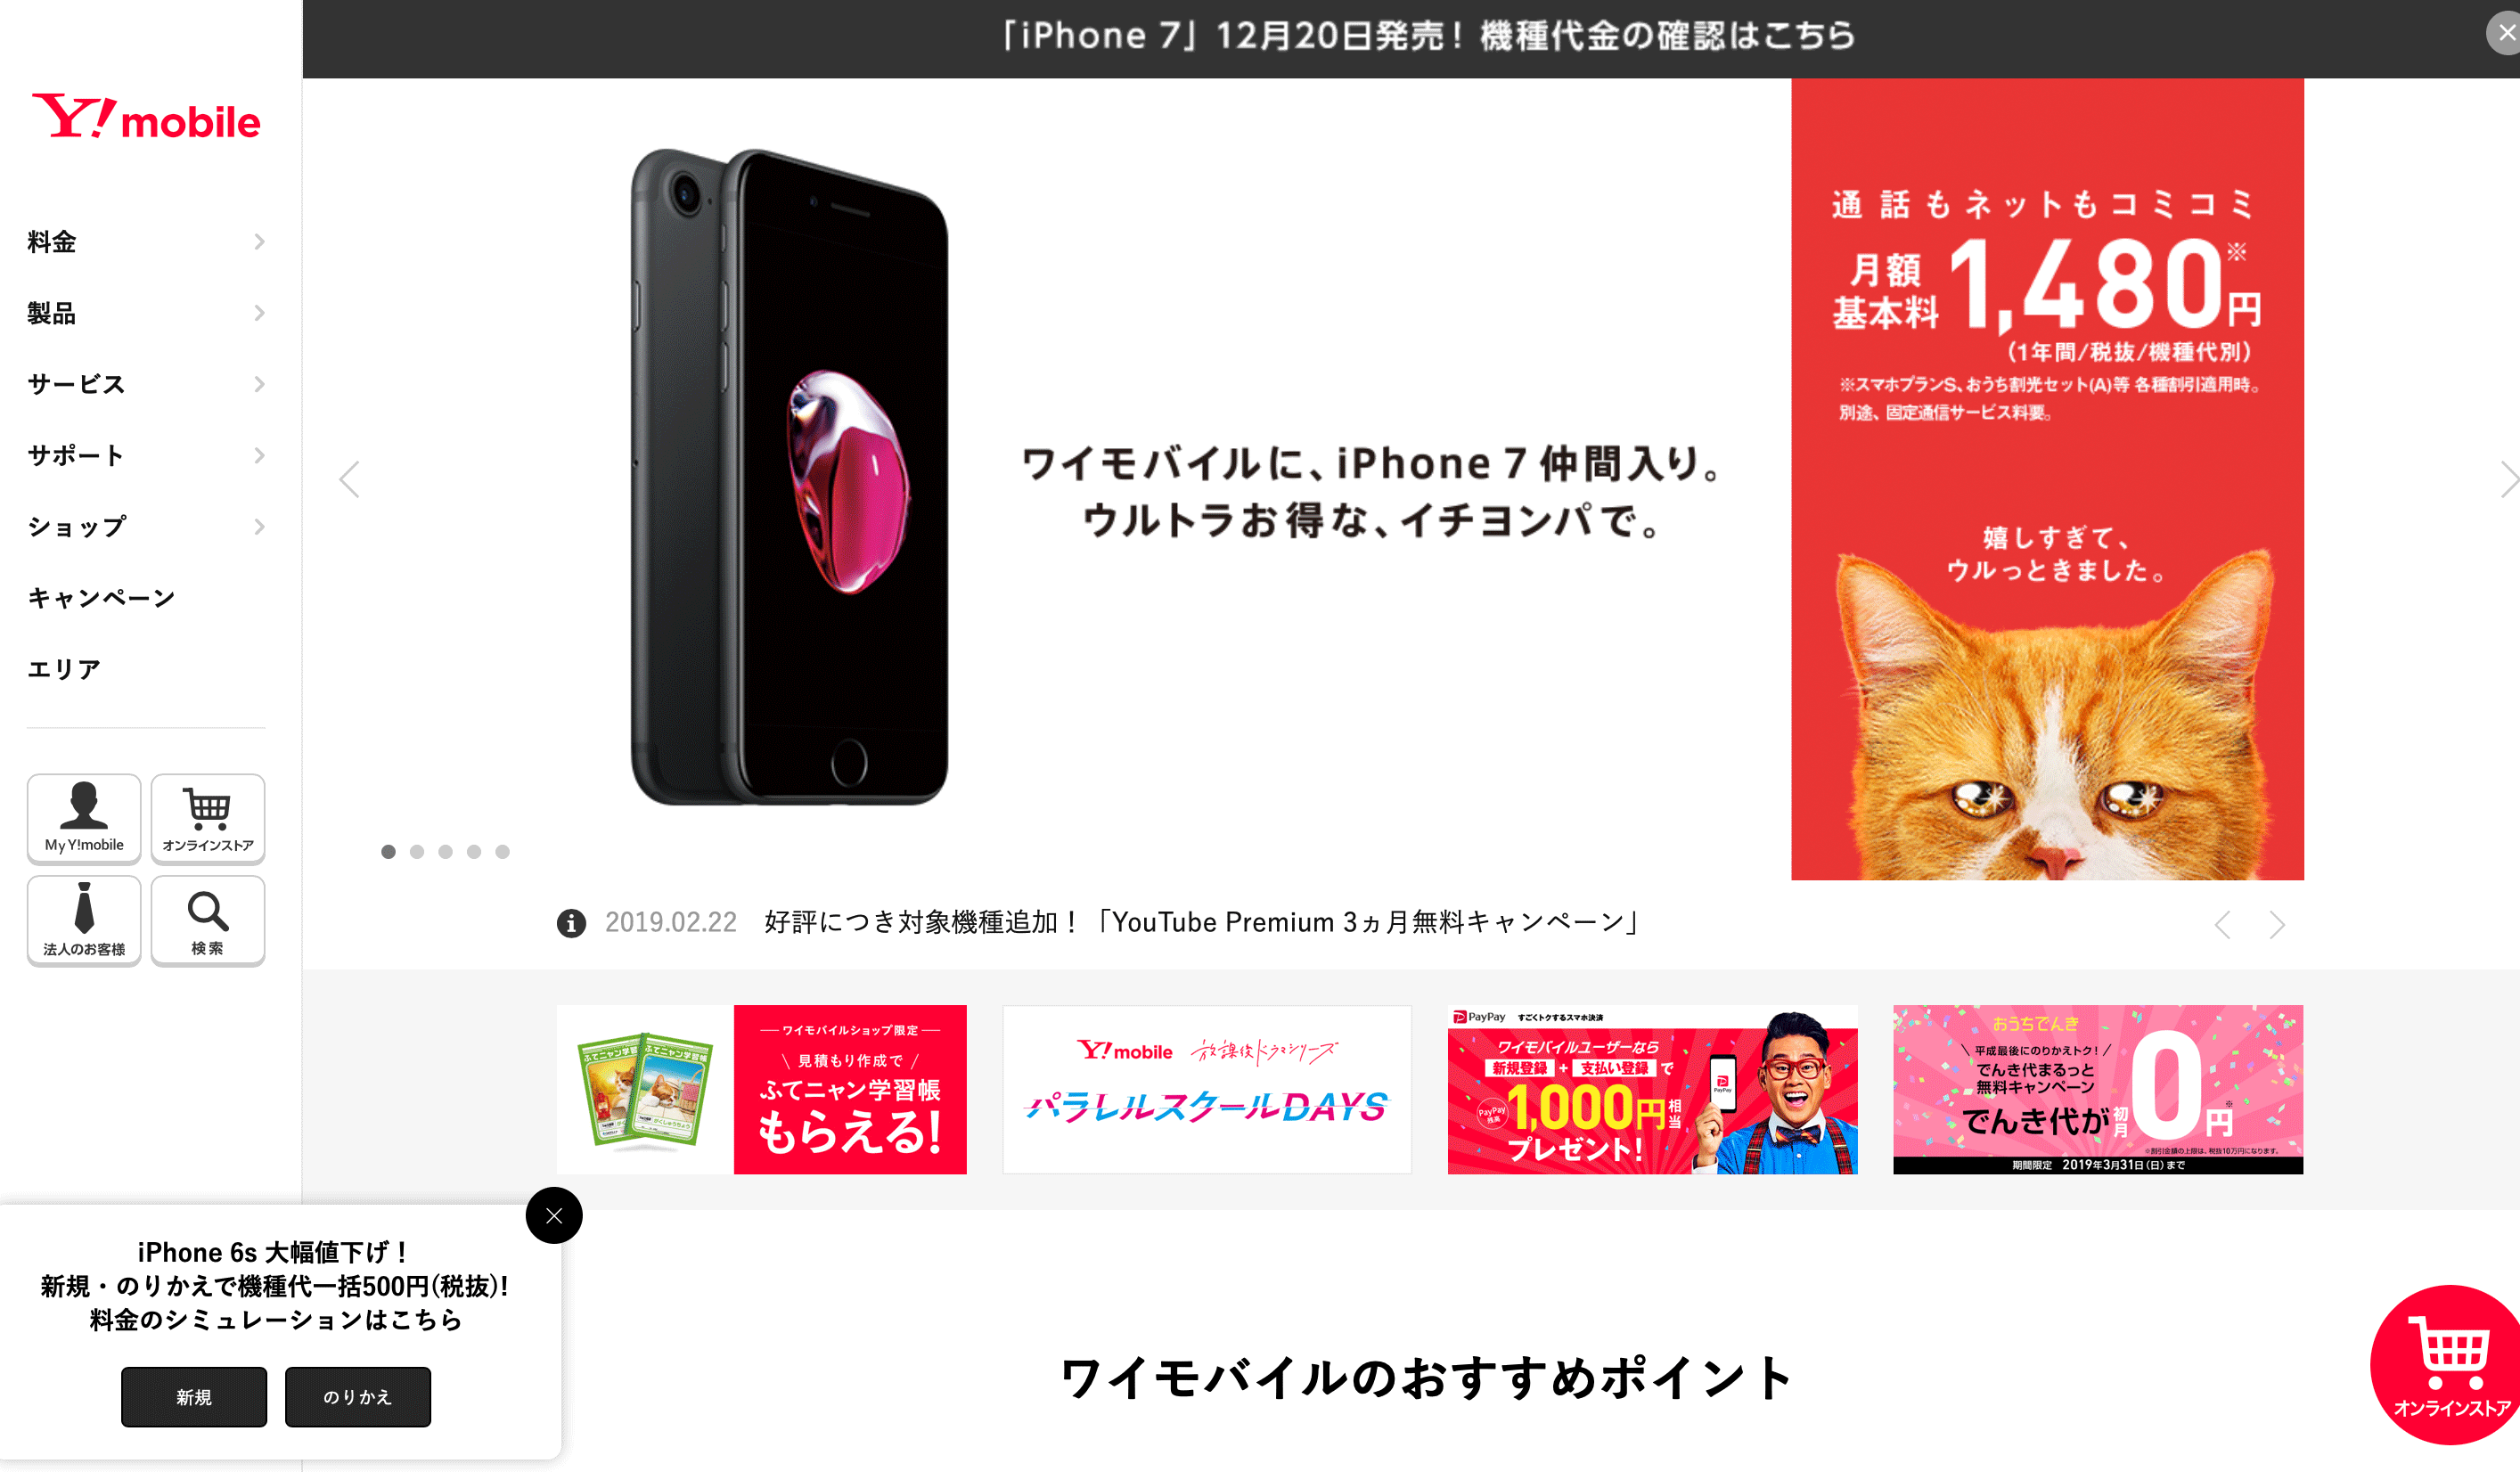 y mobile ログイン